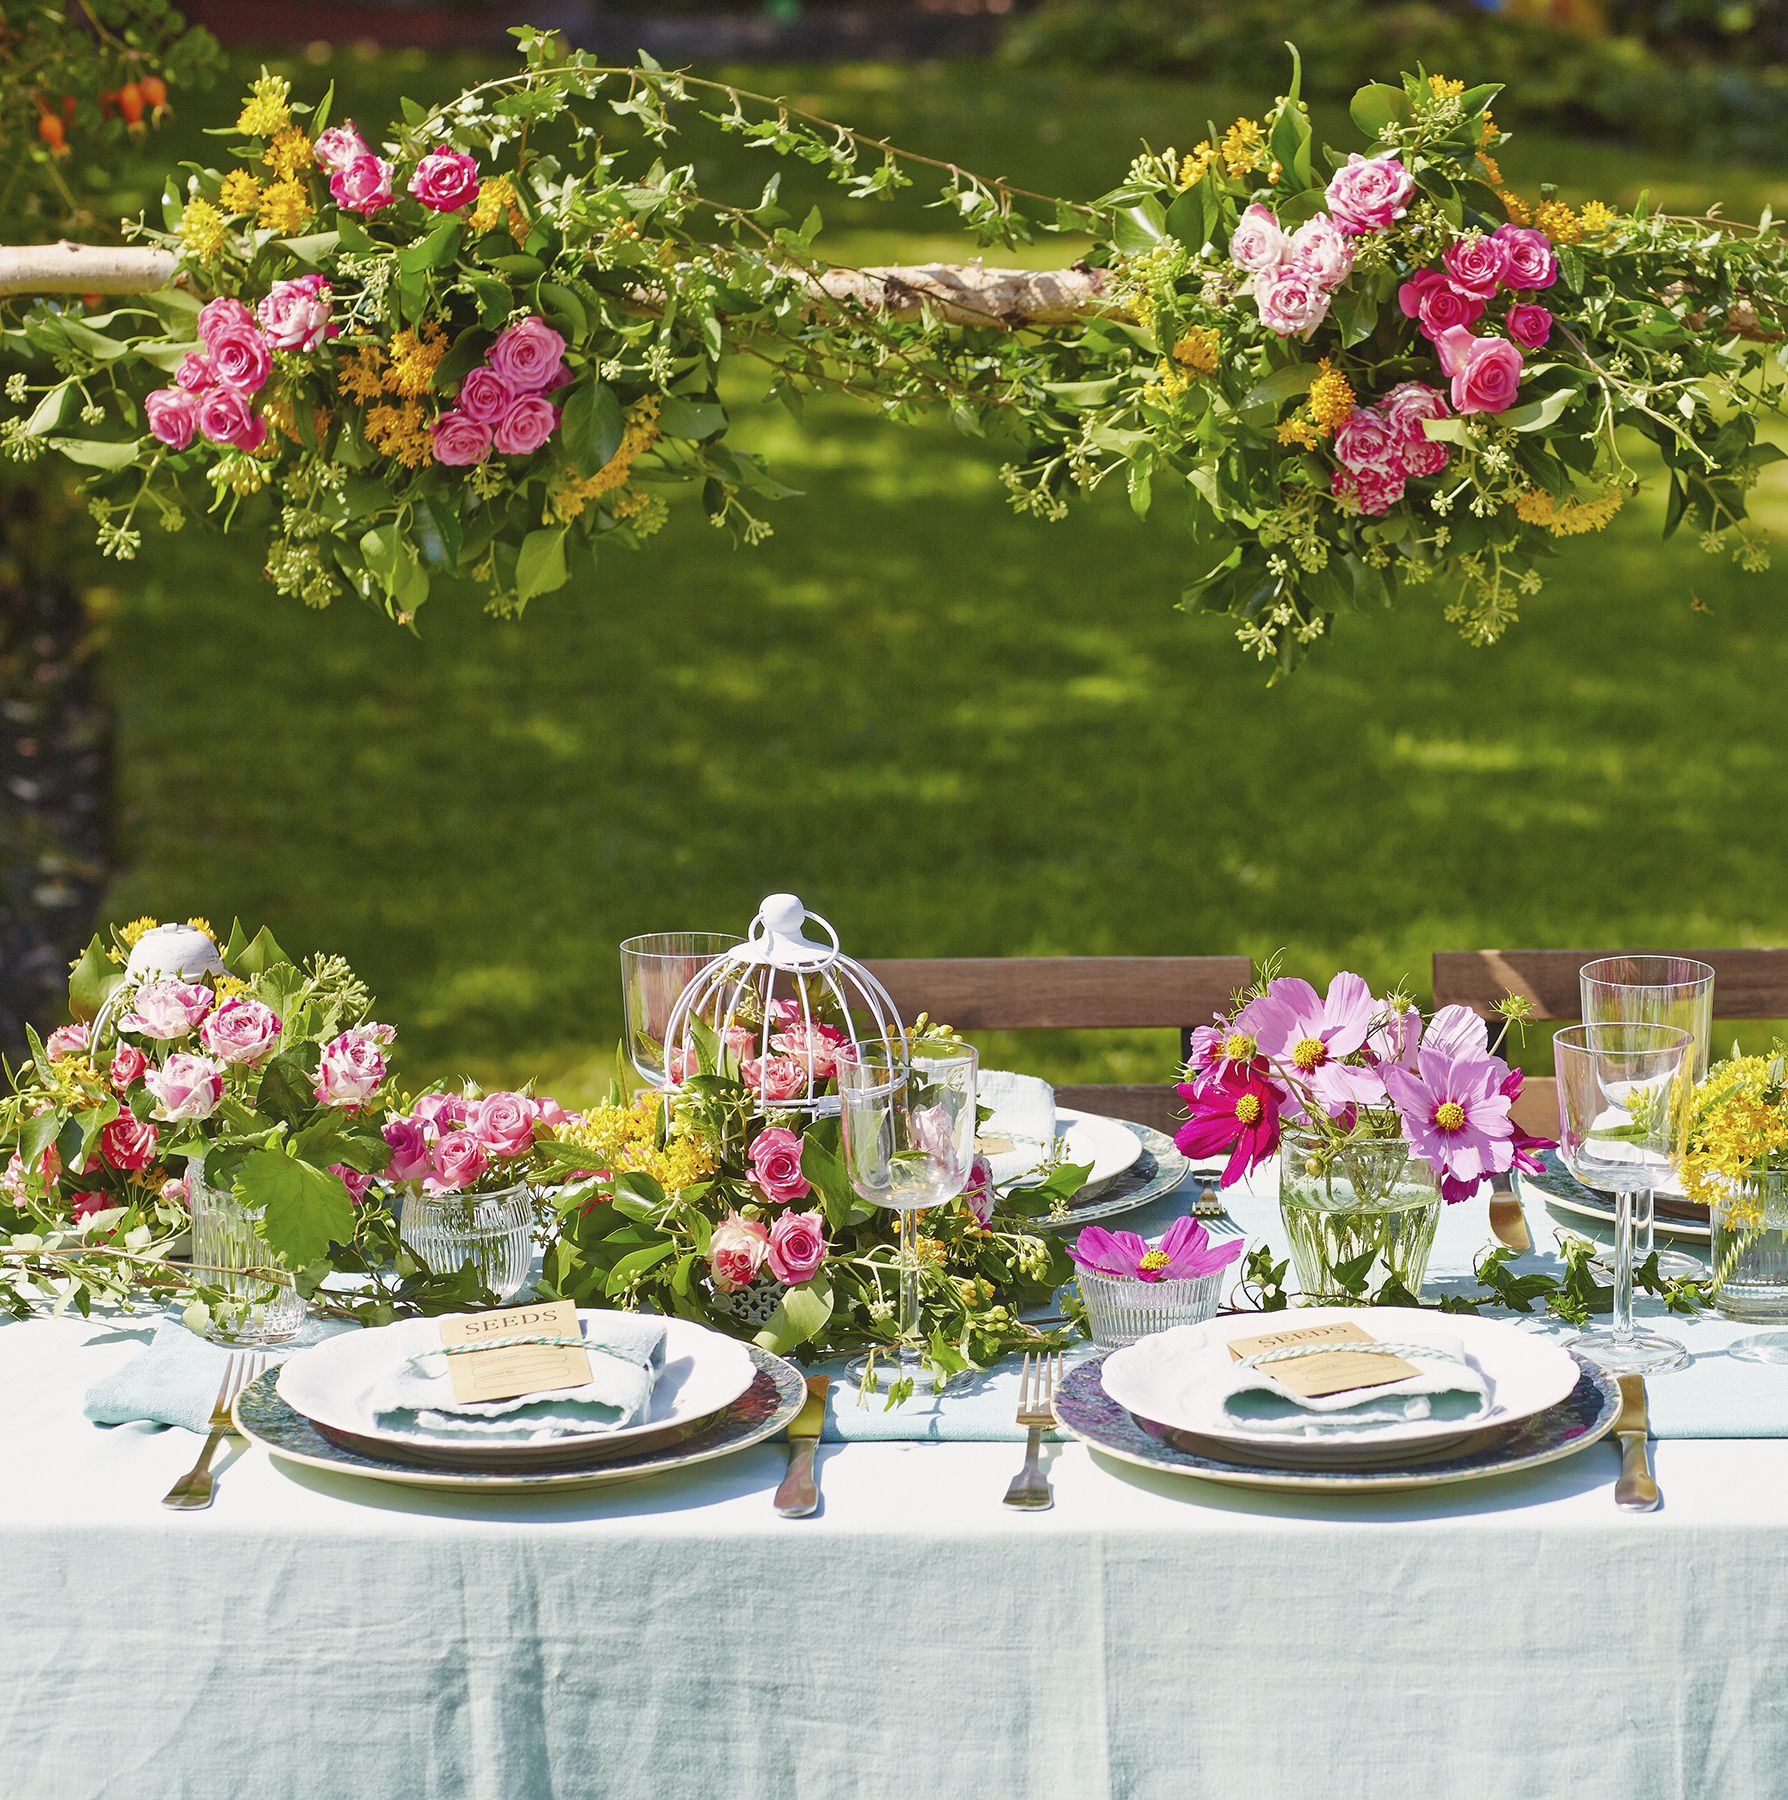 garden party with flowers